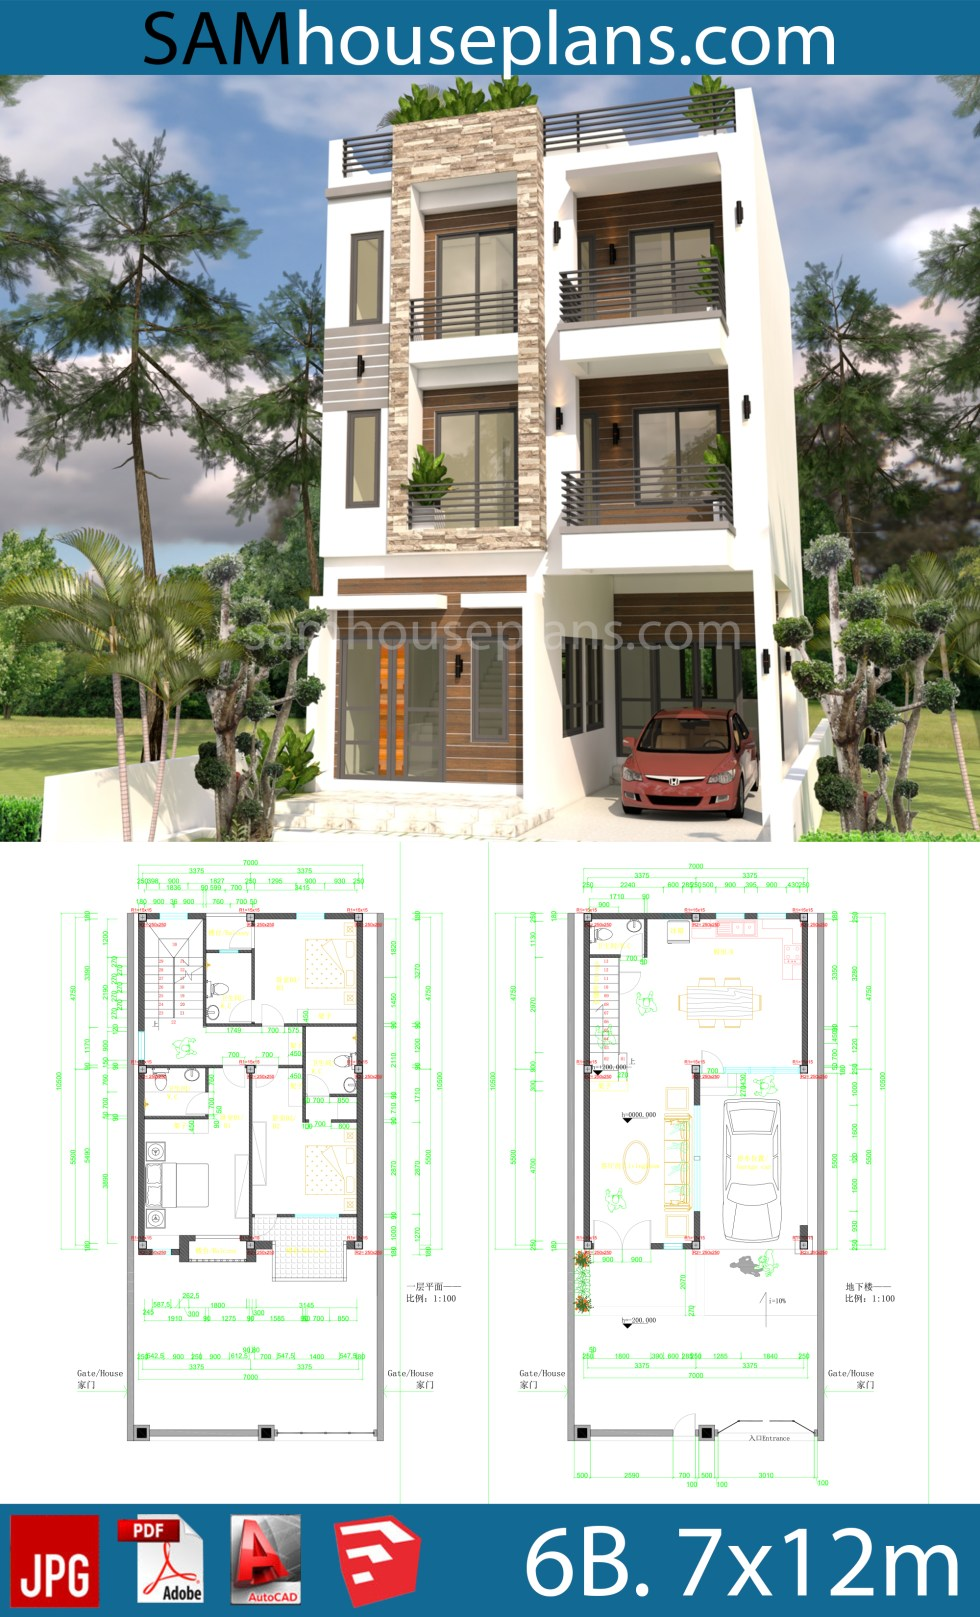 House Plans 7x10m with 6 Bedrooms.